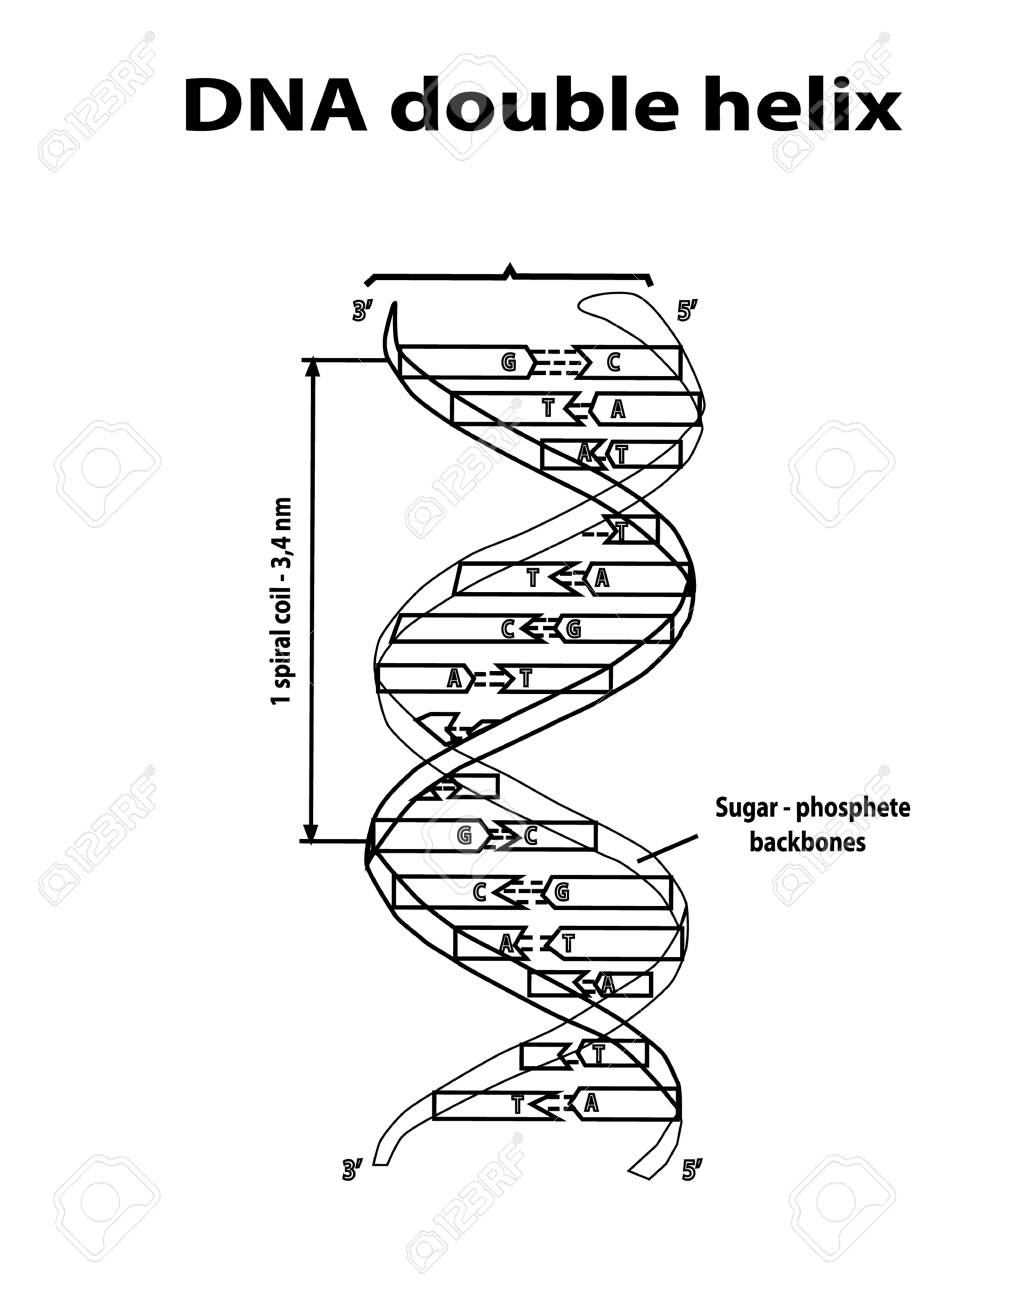 dna structure double helix in black lines on white background  nucleotide,  phosphate, sugar